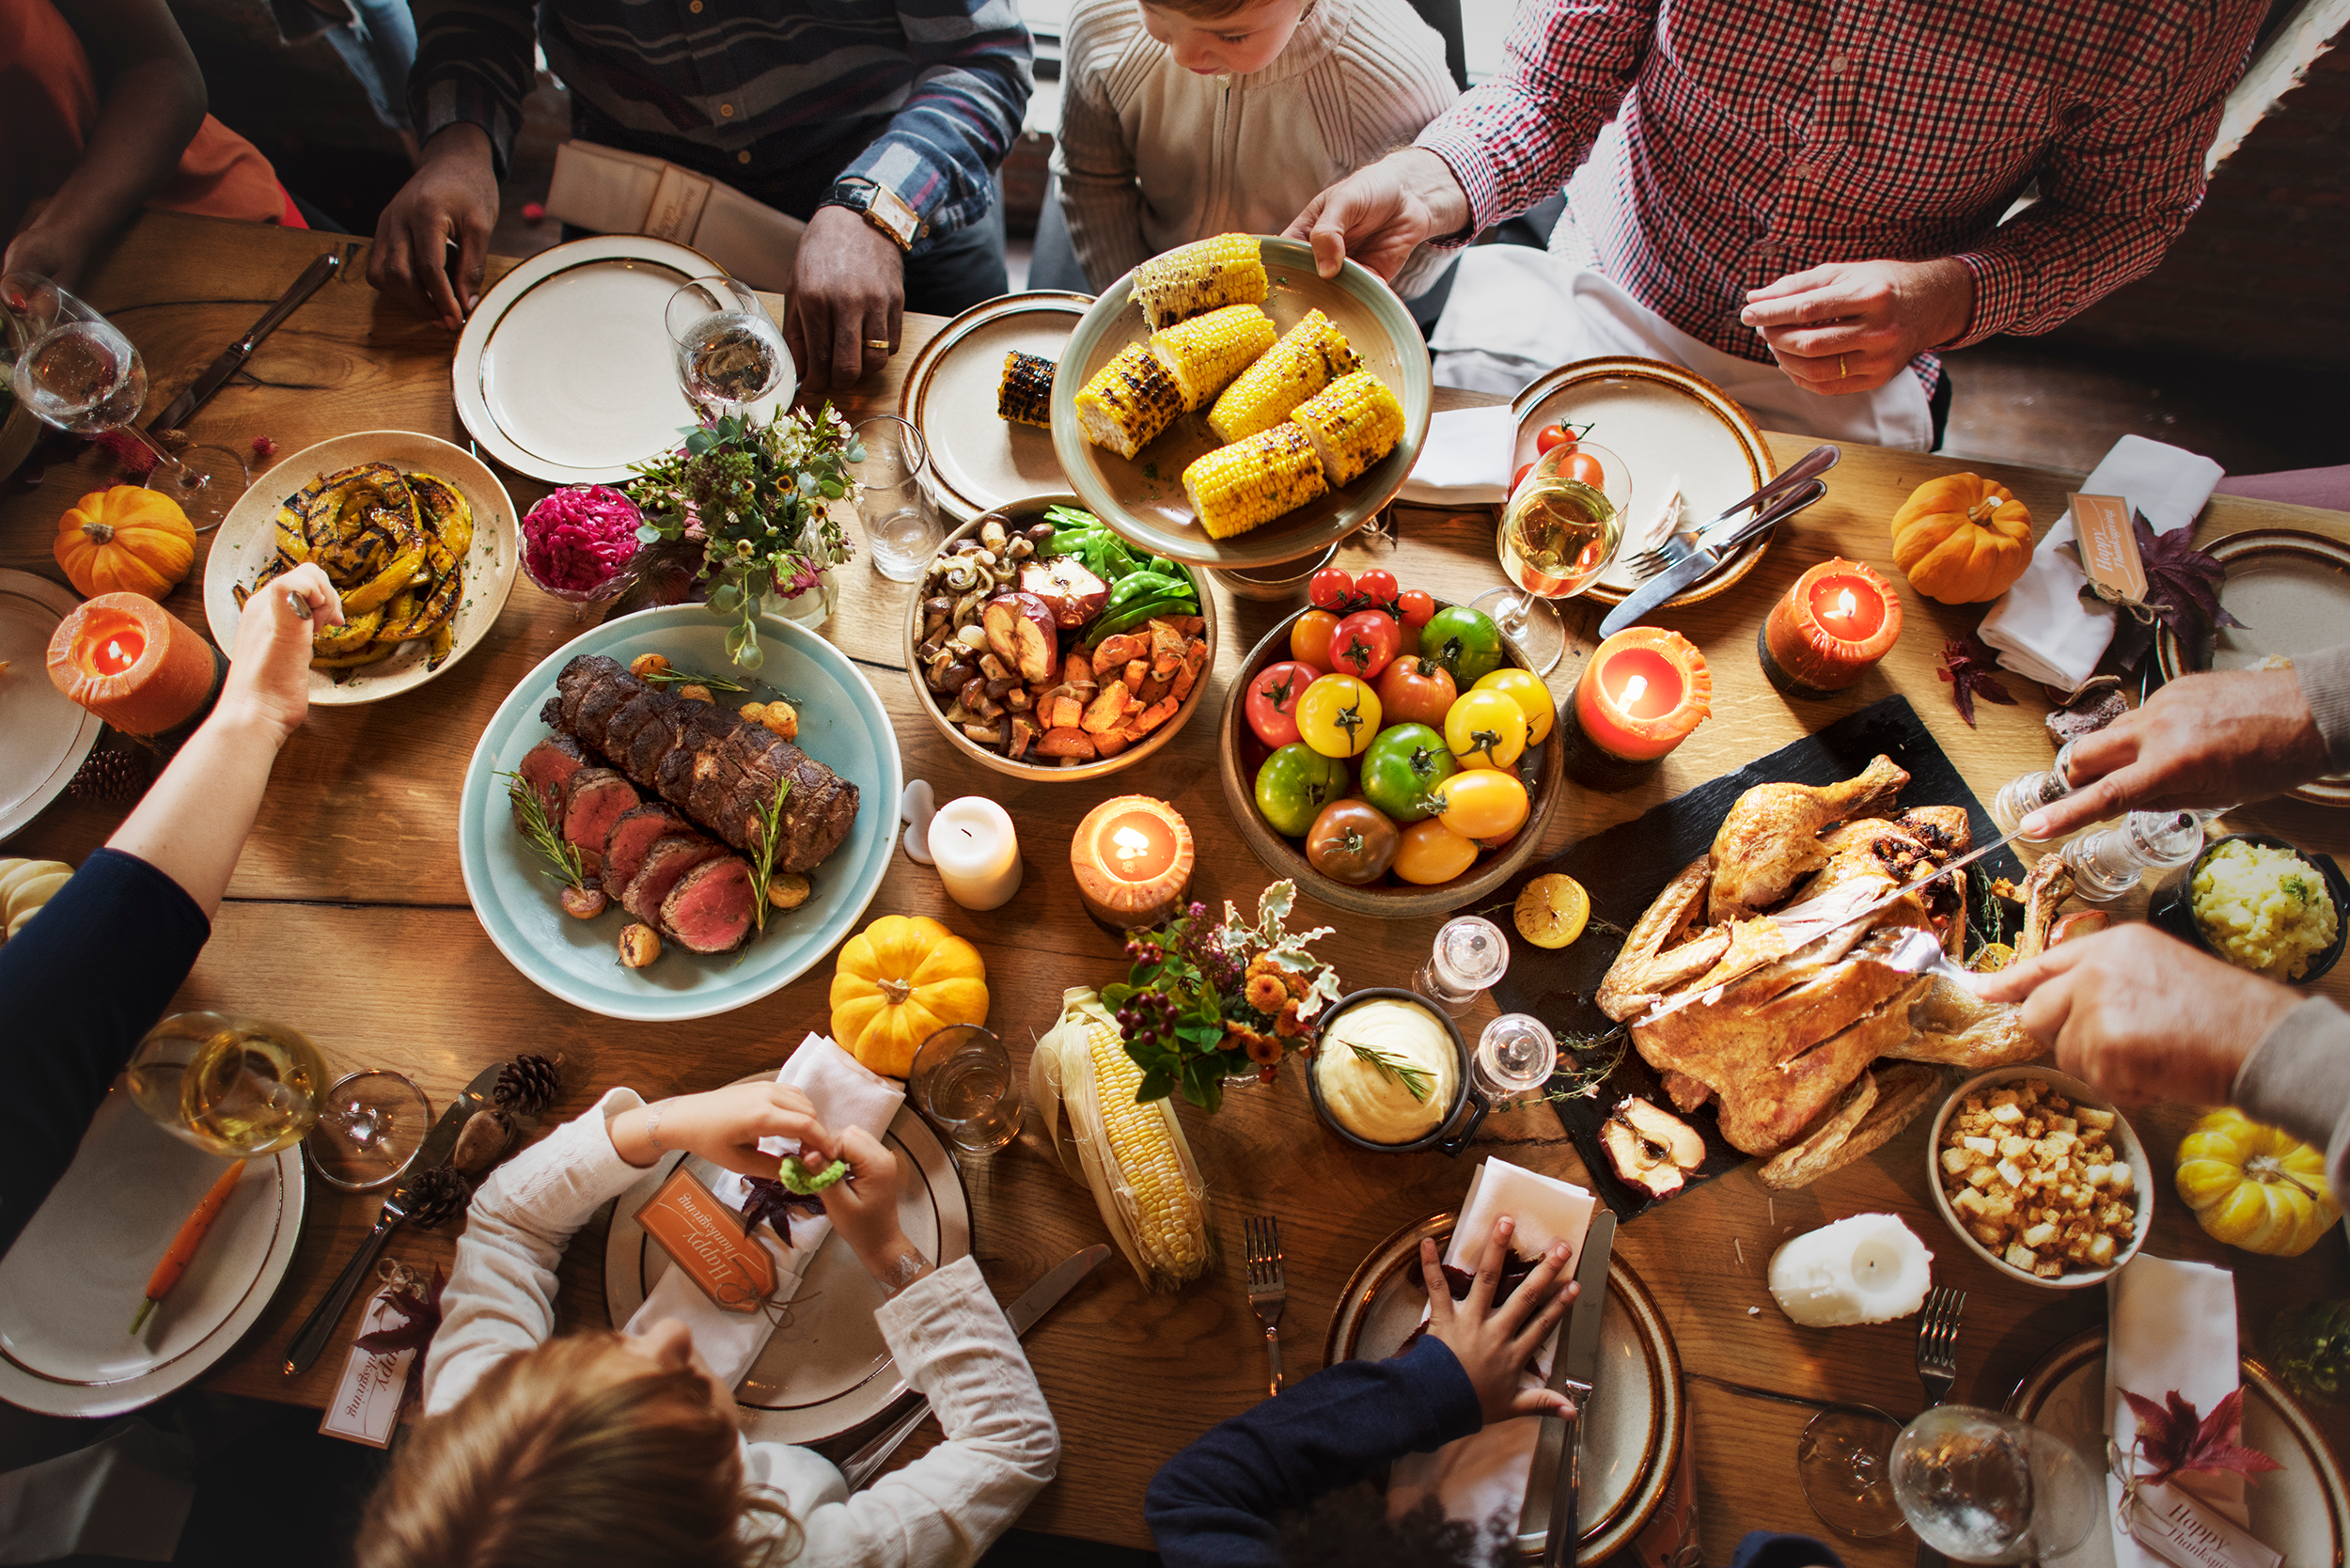 Thanksgiving rituals of connection